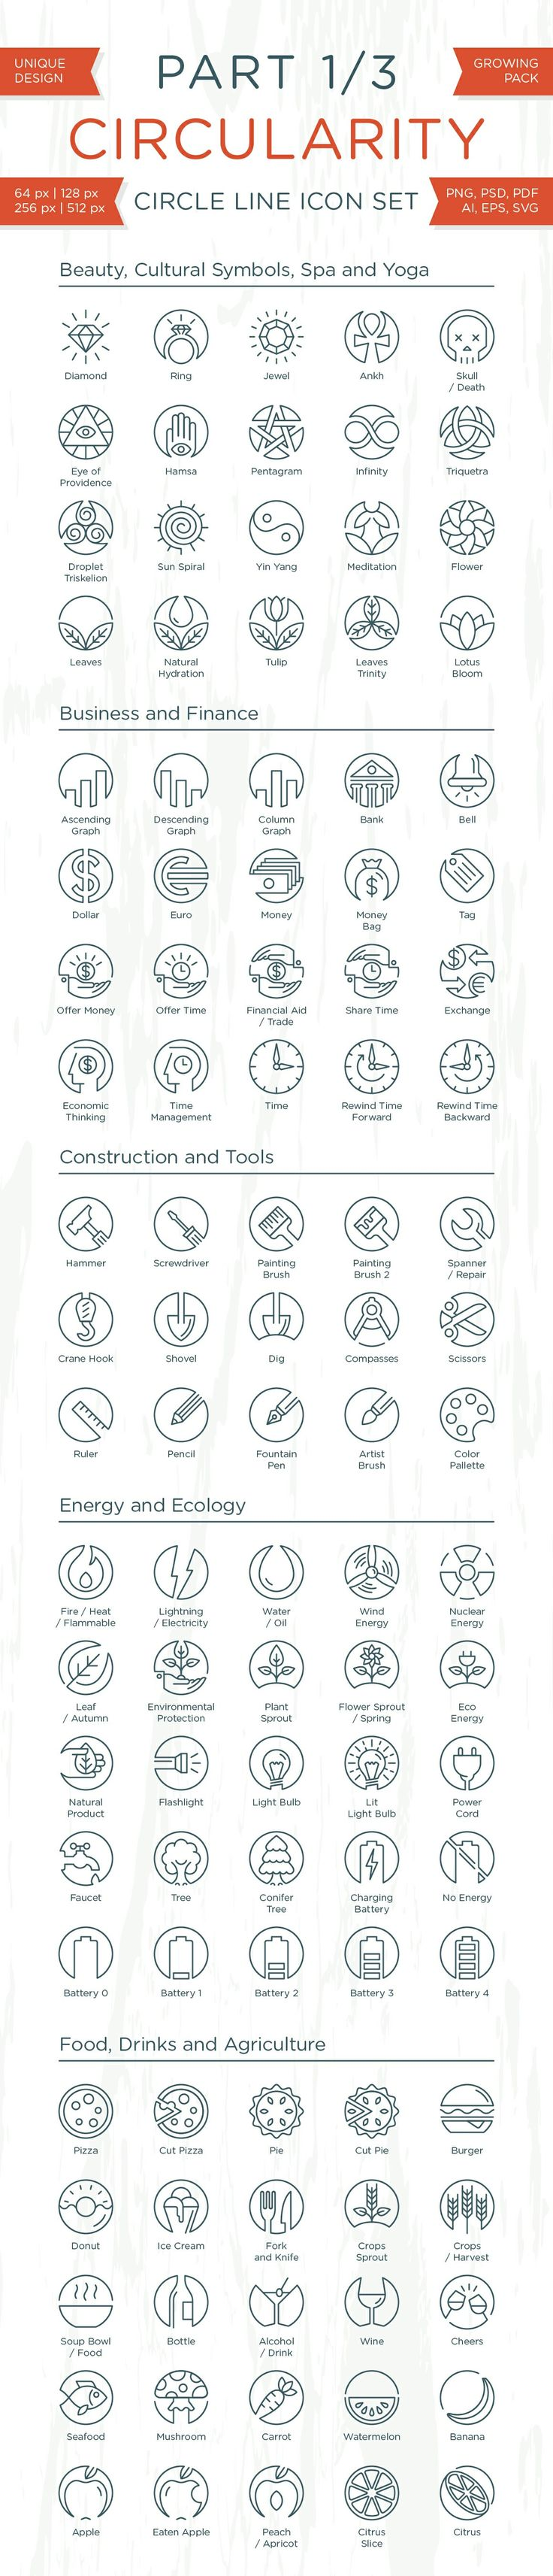 Circularity - Circle Line Icons Collection for sale - circle, bundle, set, collection, icons, circle icons, pixel perfect, vector, line, beauty icons, spa icons, yoga icons, cultural symbols, business icons, finance icons, construction icons, tool icons, energy icons, ecology icons, food icons, round, circularity, outline, simple, web, mobile, android, stroke, symbol, creative, design,